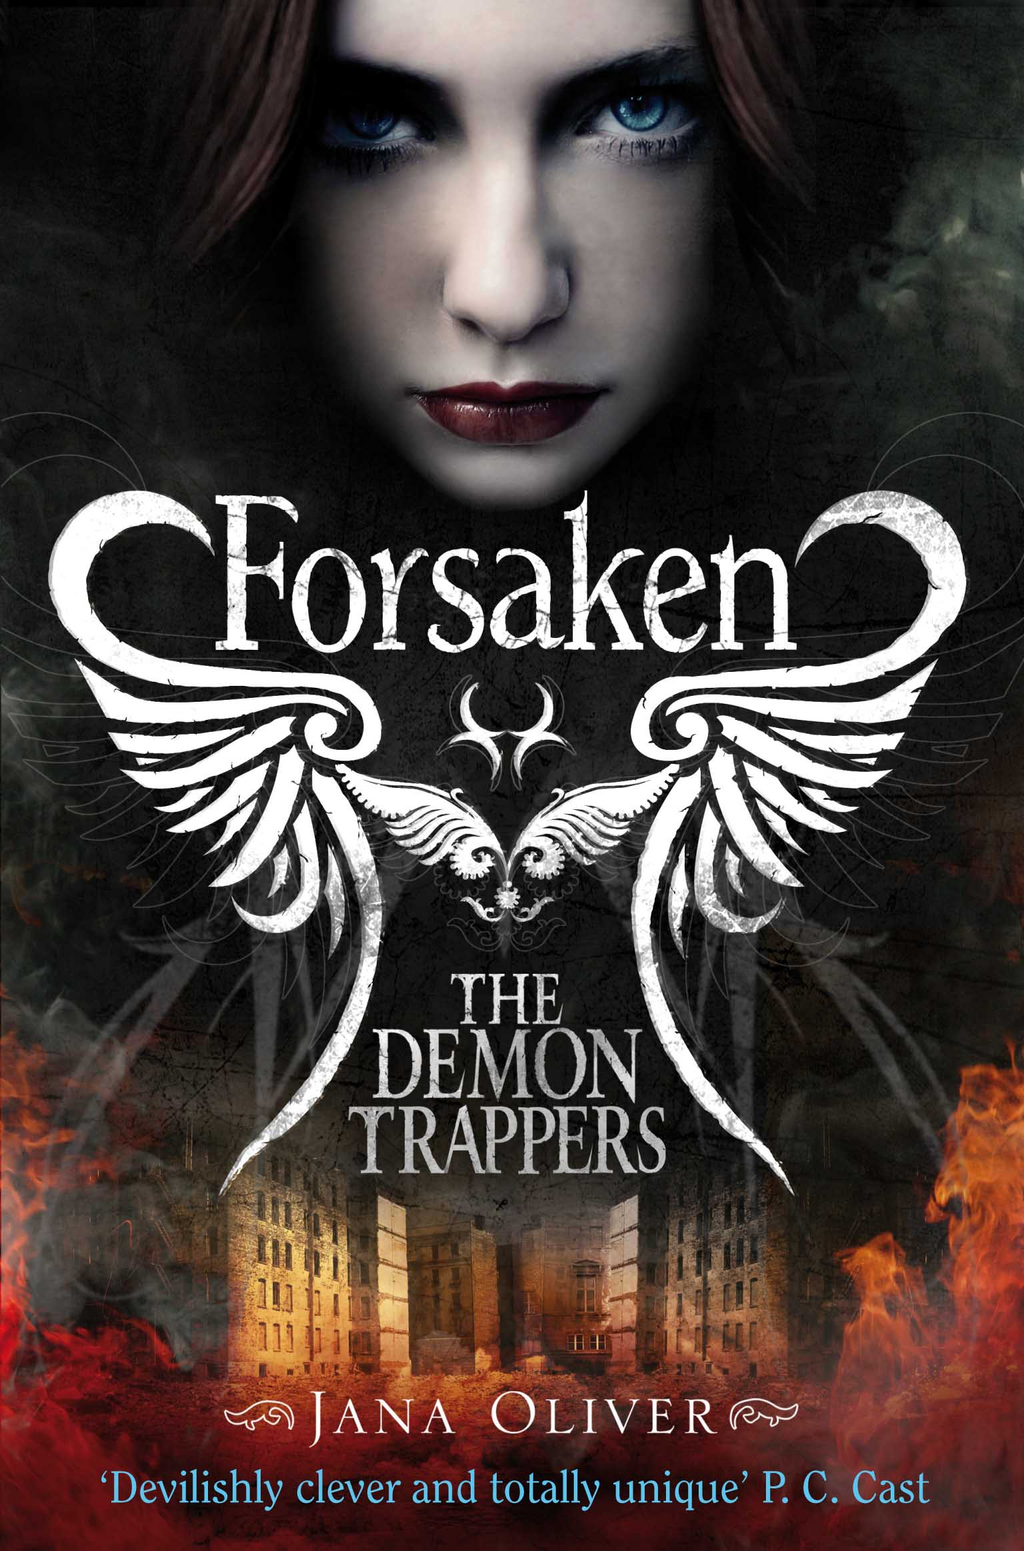 The Demon Trappers: Forsaken